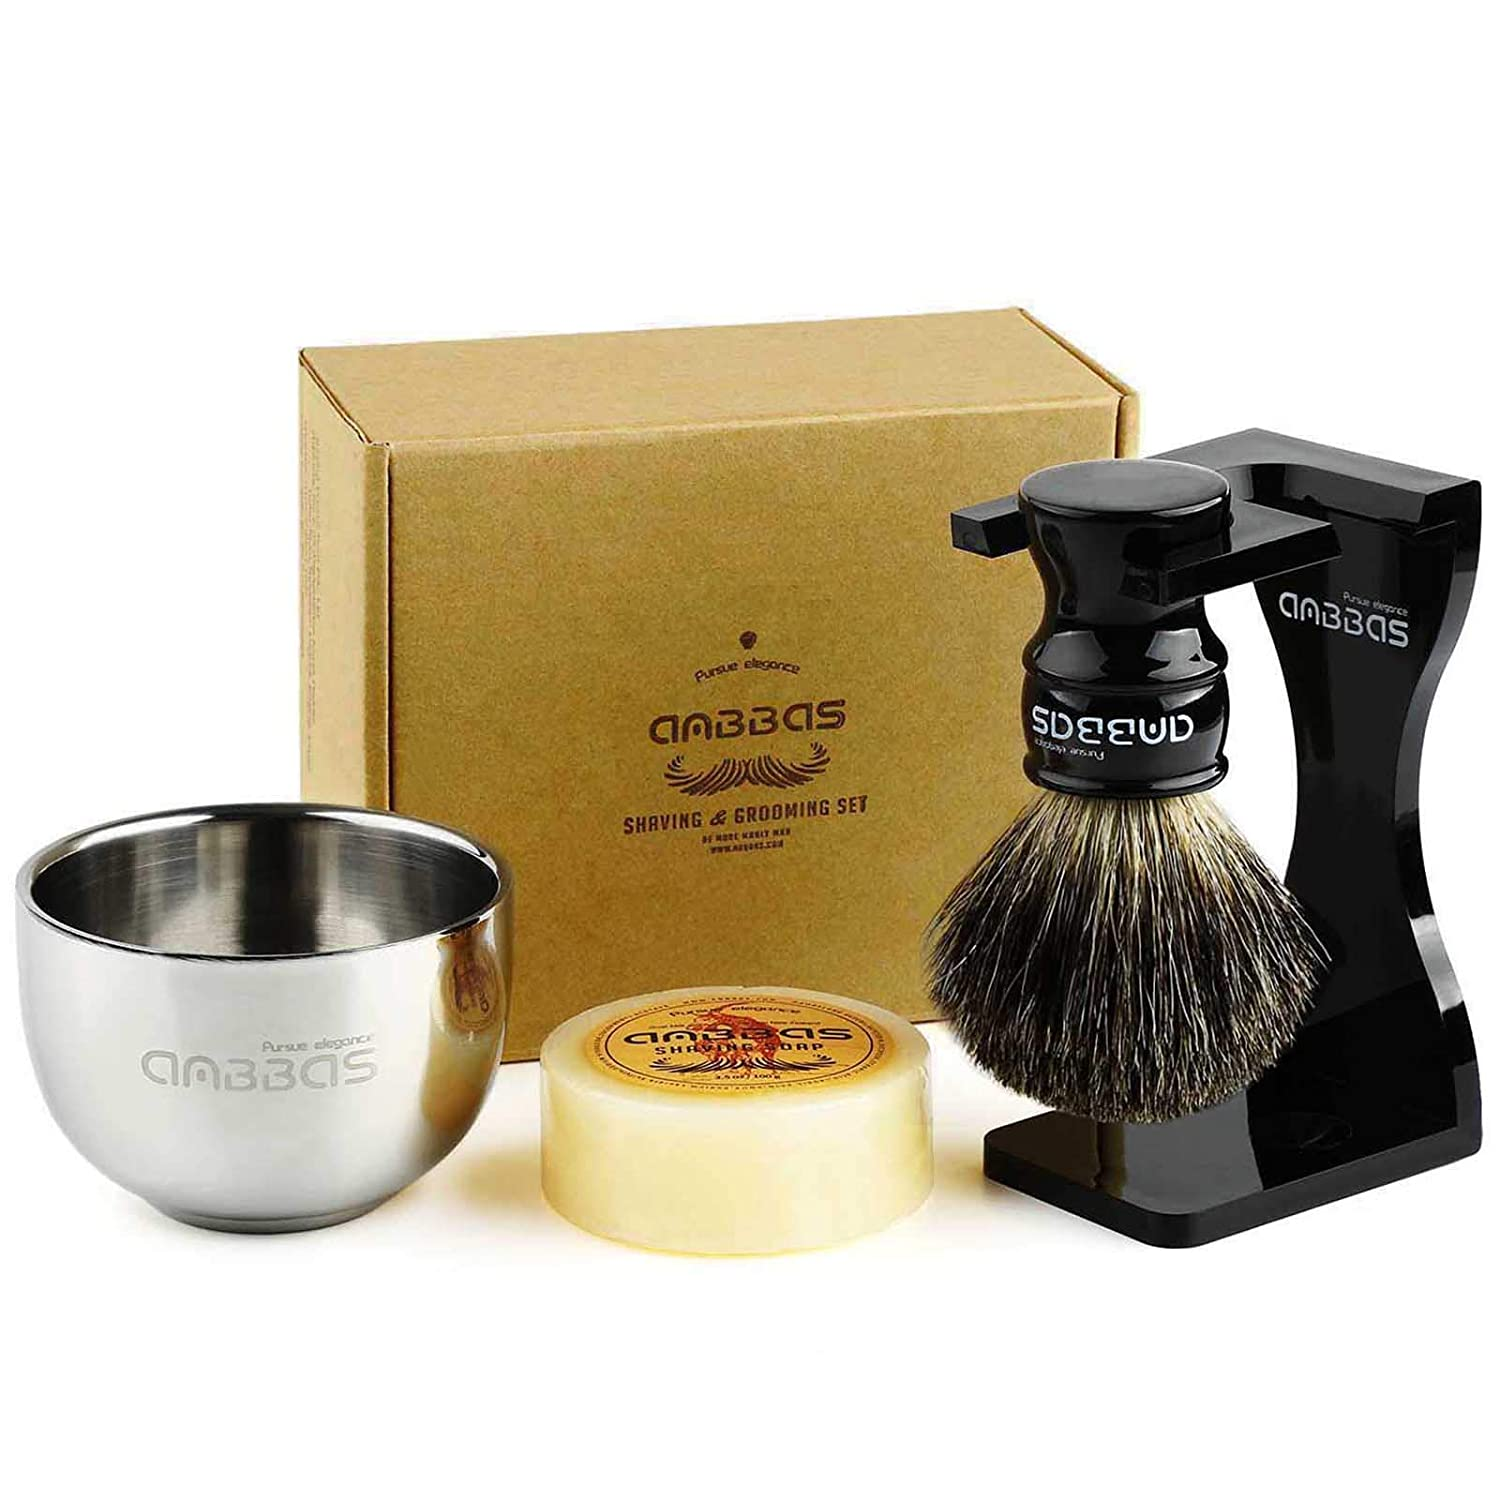 Shaving unisex Set 4in1 Anbbas Pure Badger Lo Miami Mall Black Brush with